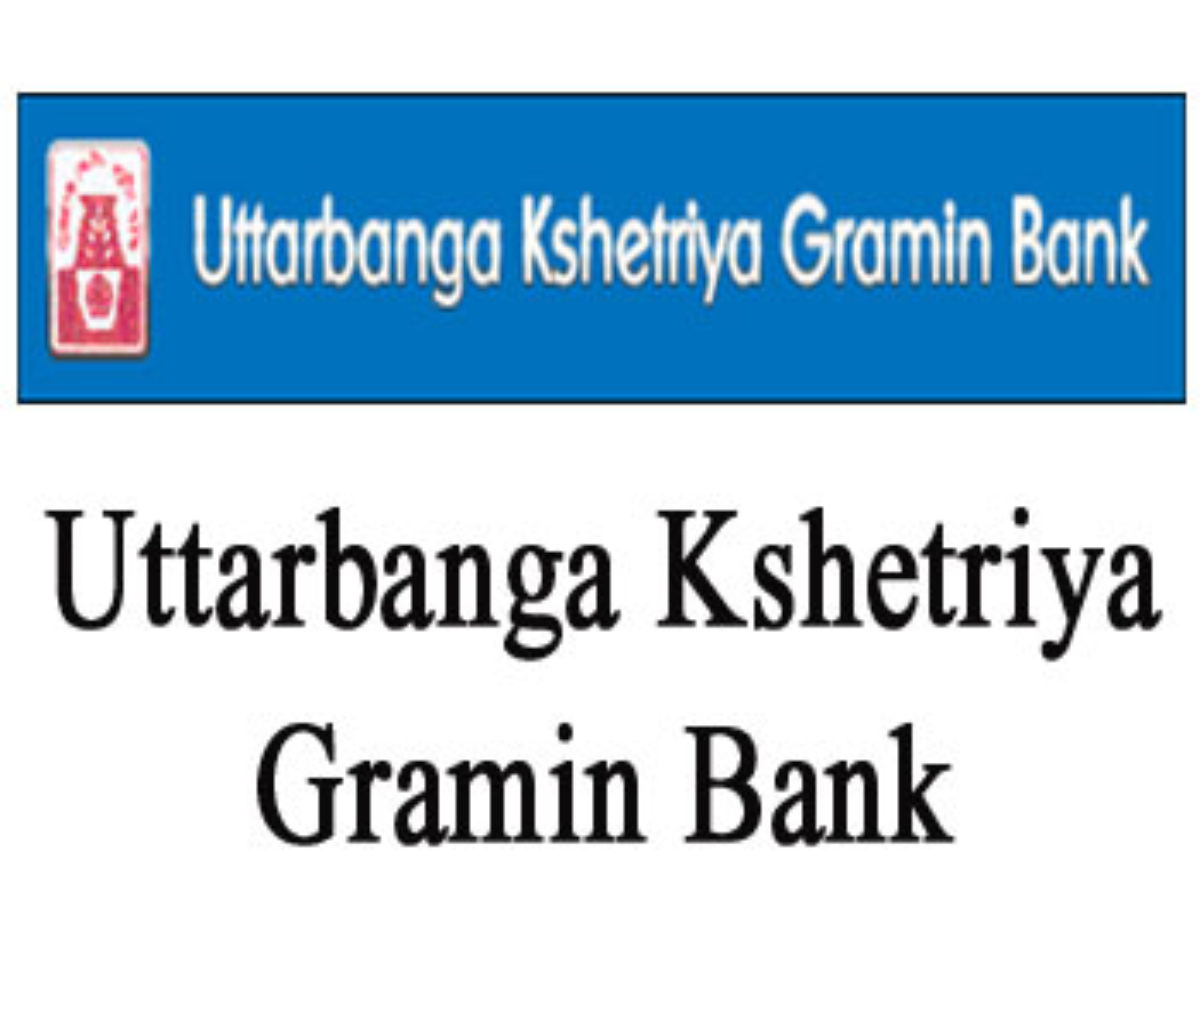 Uttarbanga Kshetriya Gramin Bank Plot Loan